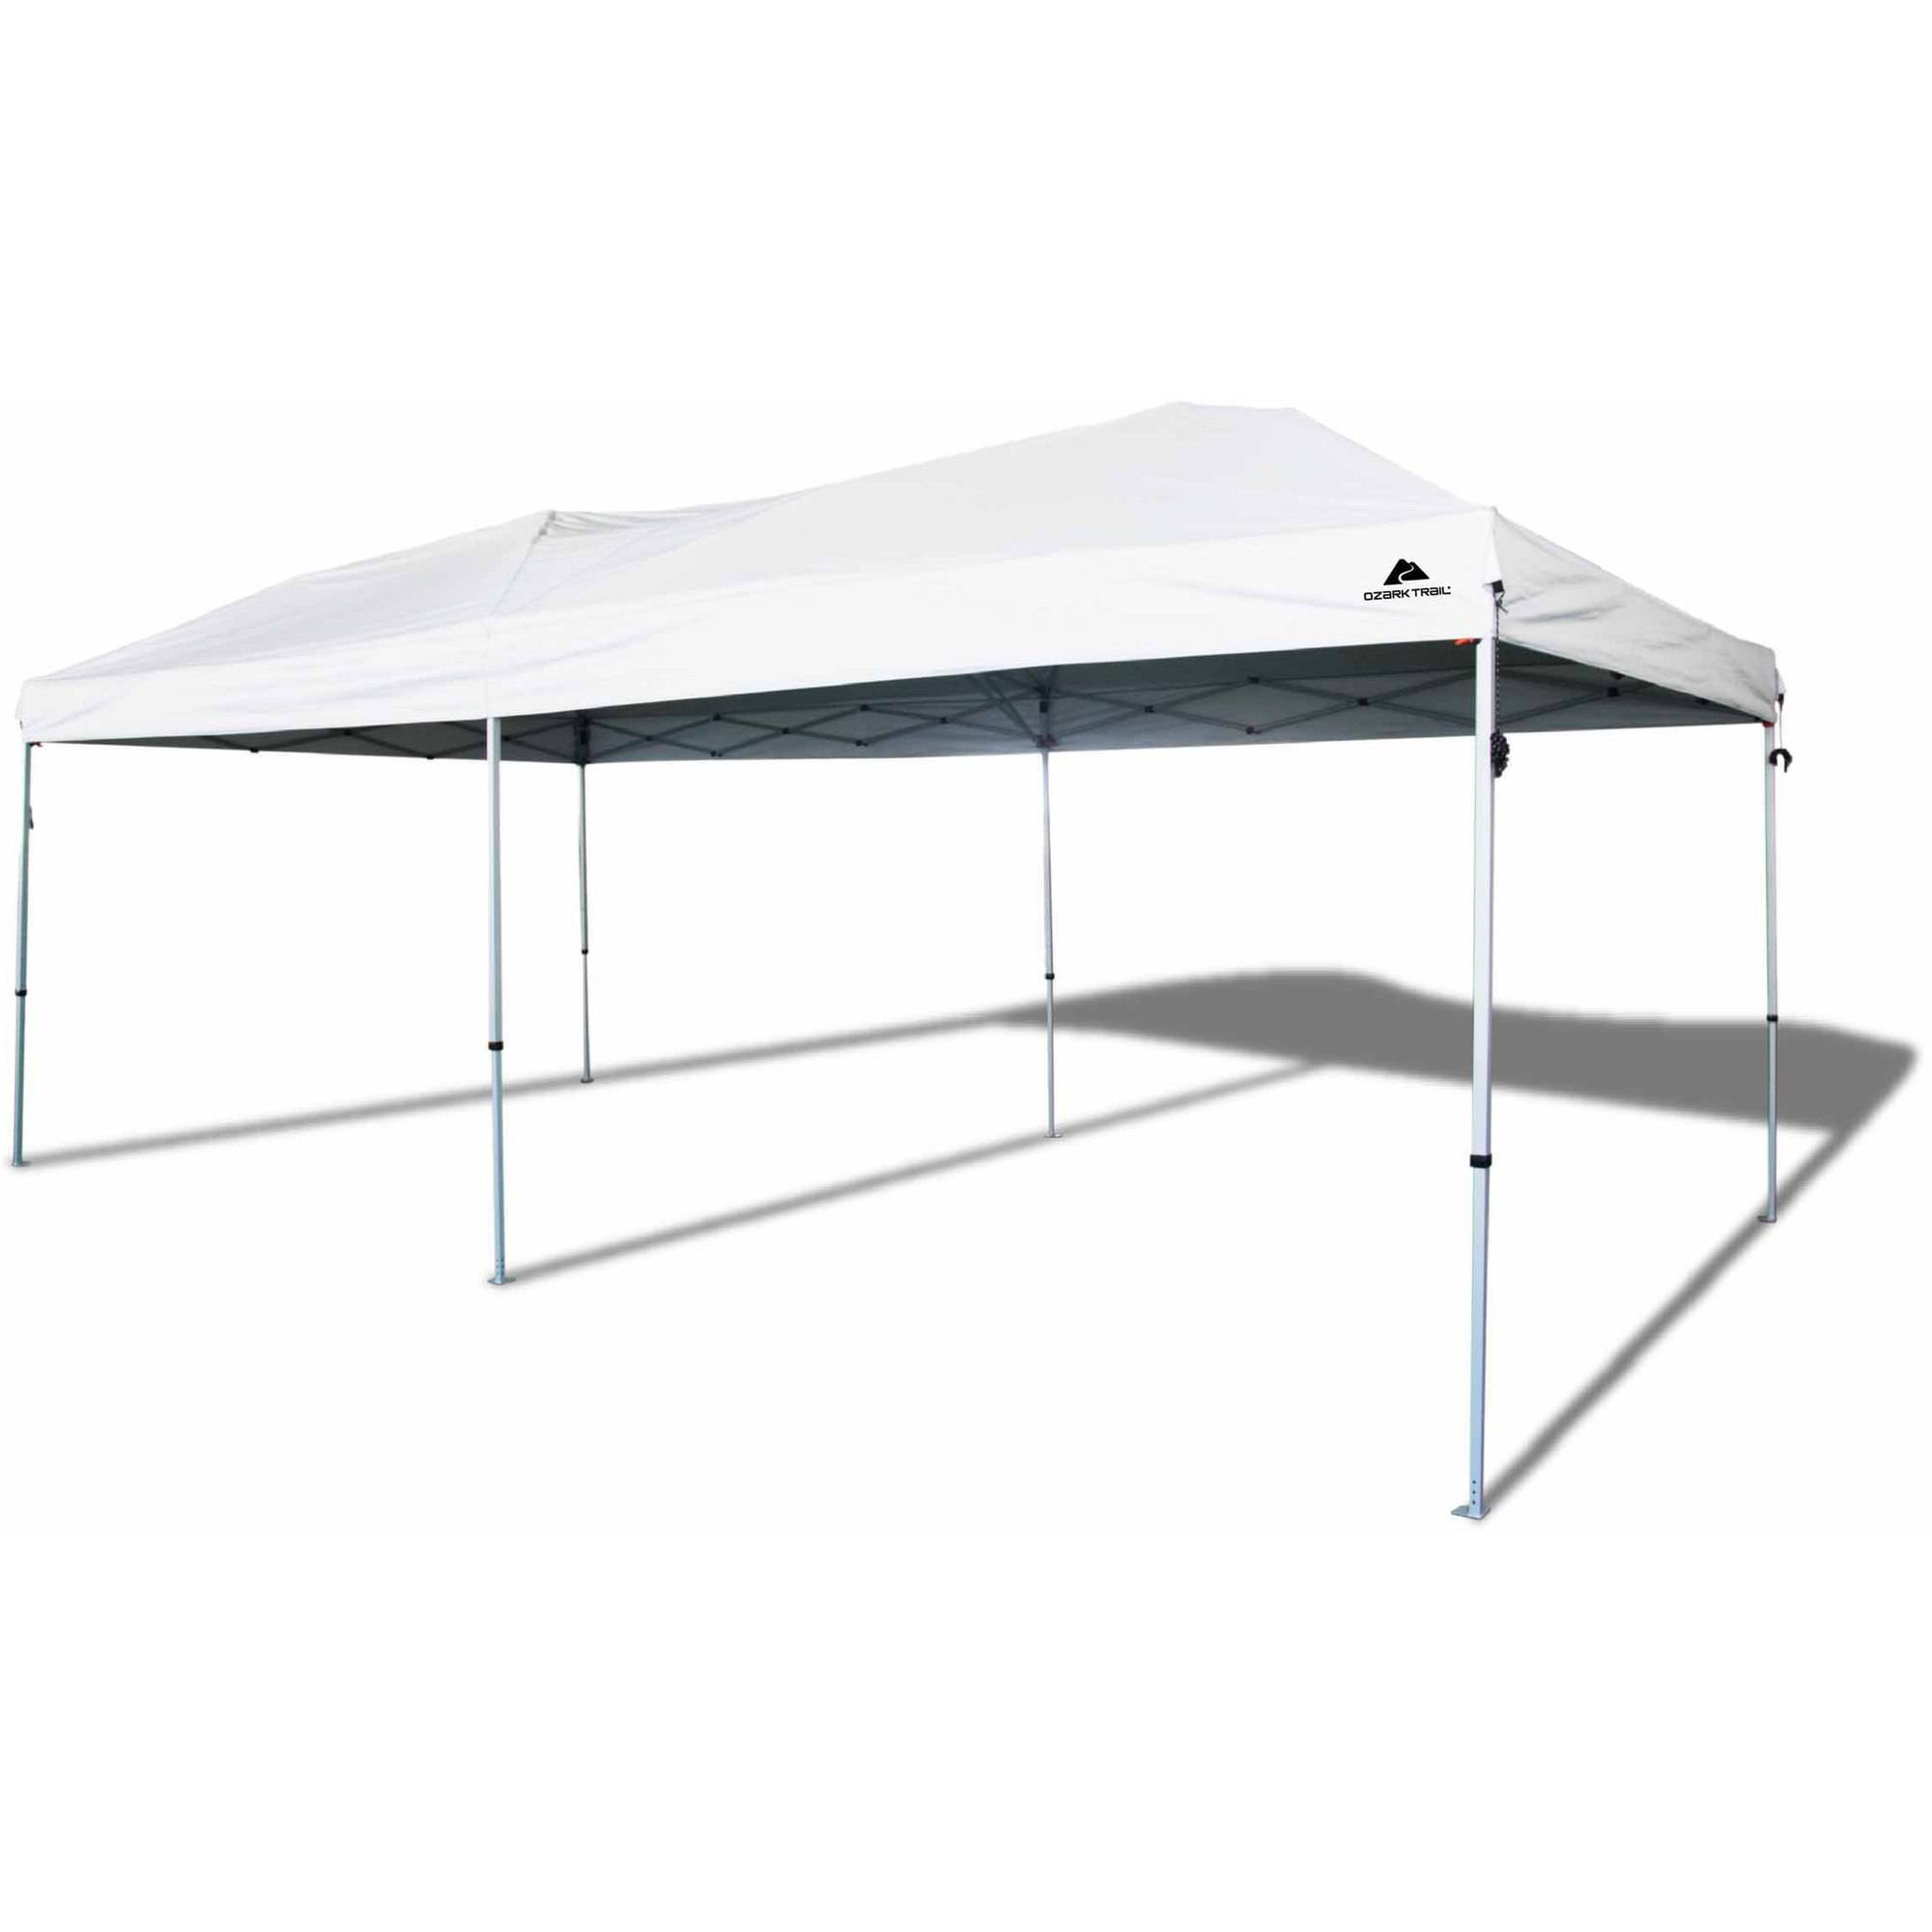 Ozark Trail 20x10 Straight Leg Instant Canopy (200 sq. ft Coverage)  sc 1 st  Walmart & E-Z Up Canopies